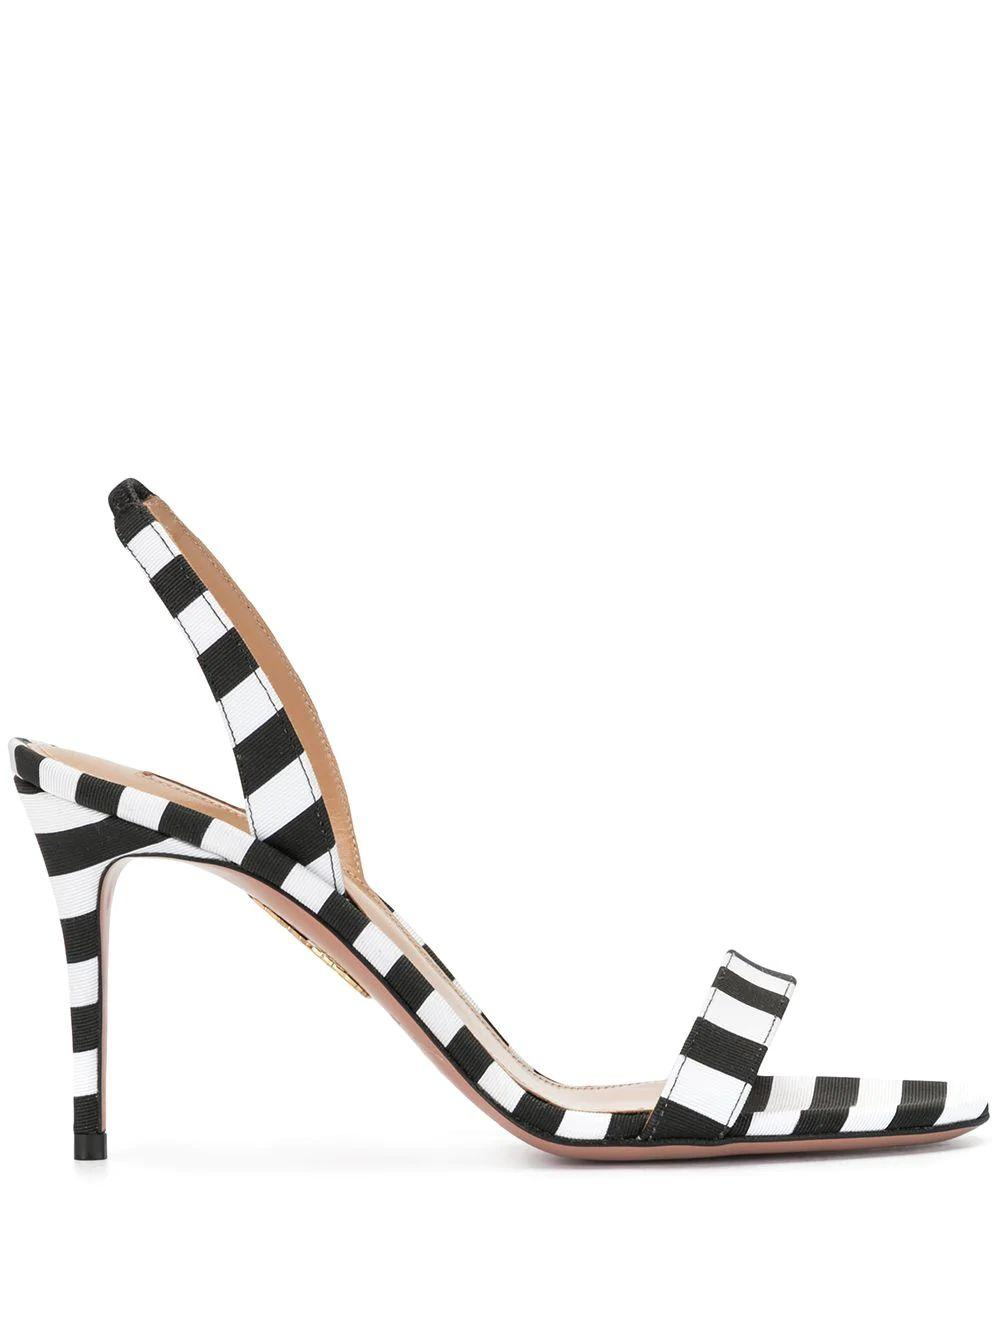 So Nude 85mm Striped Sling Back Sandal